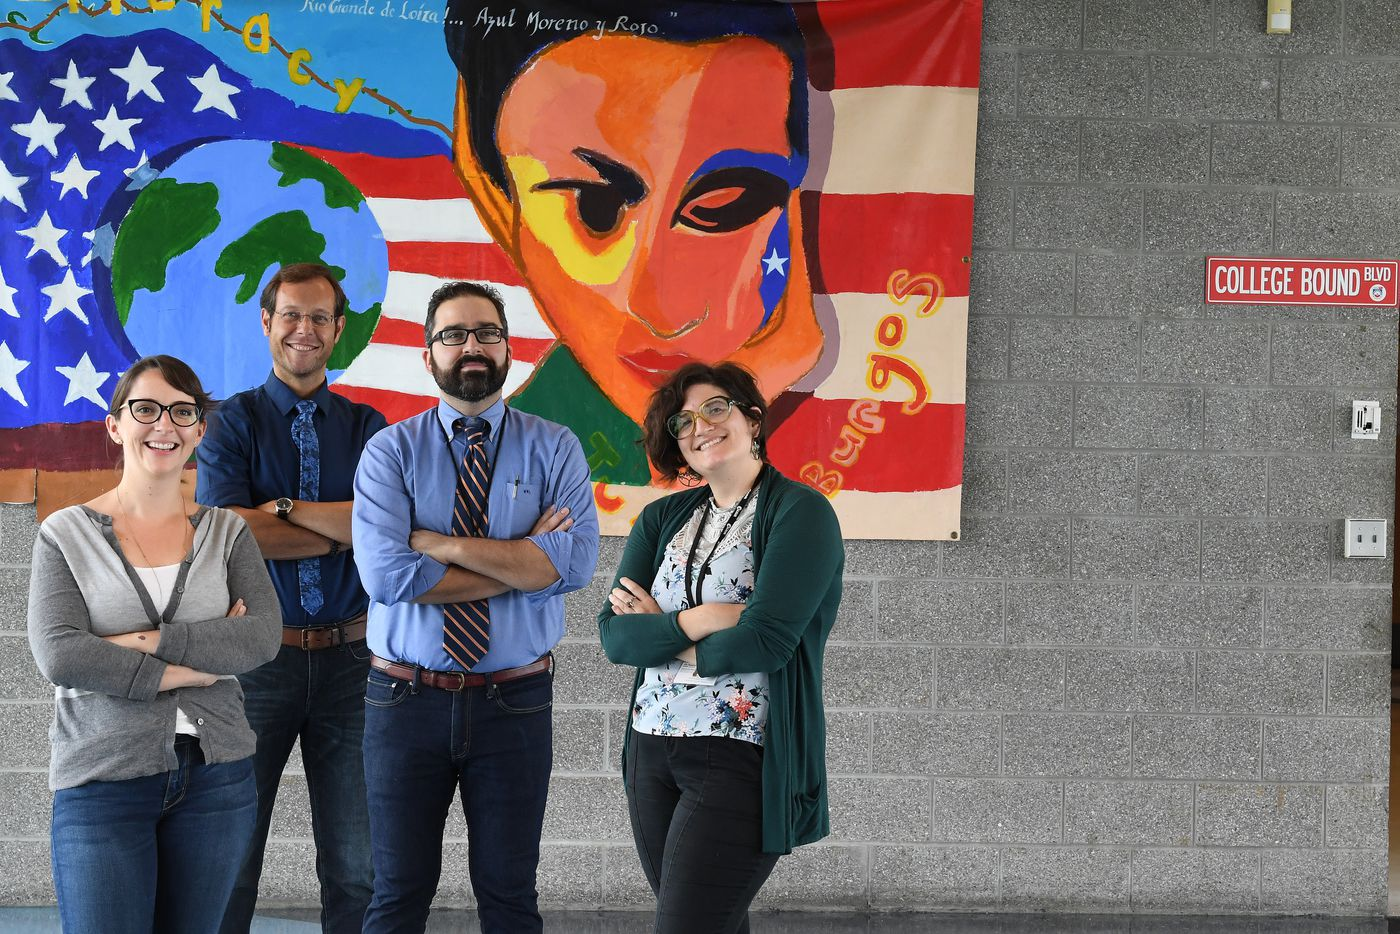 To better understand their Puerto Rican students, Philly teachers travel to Caribbean